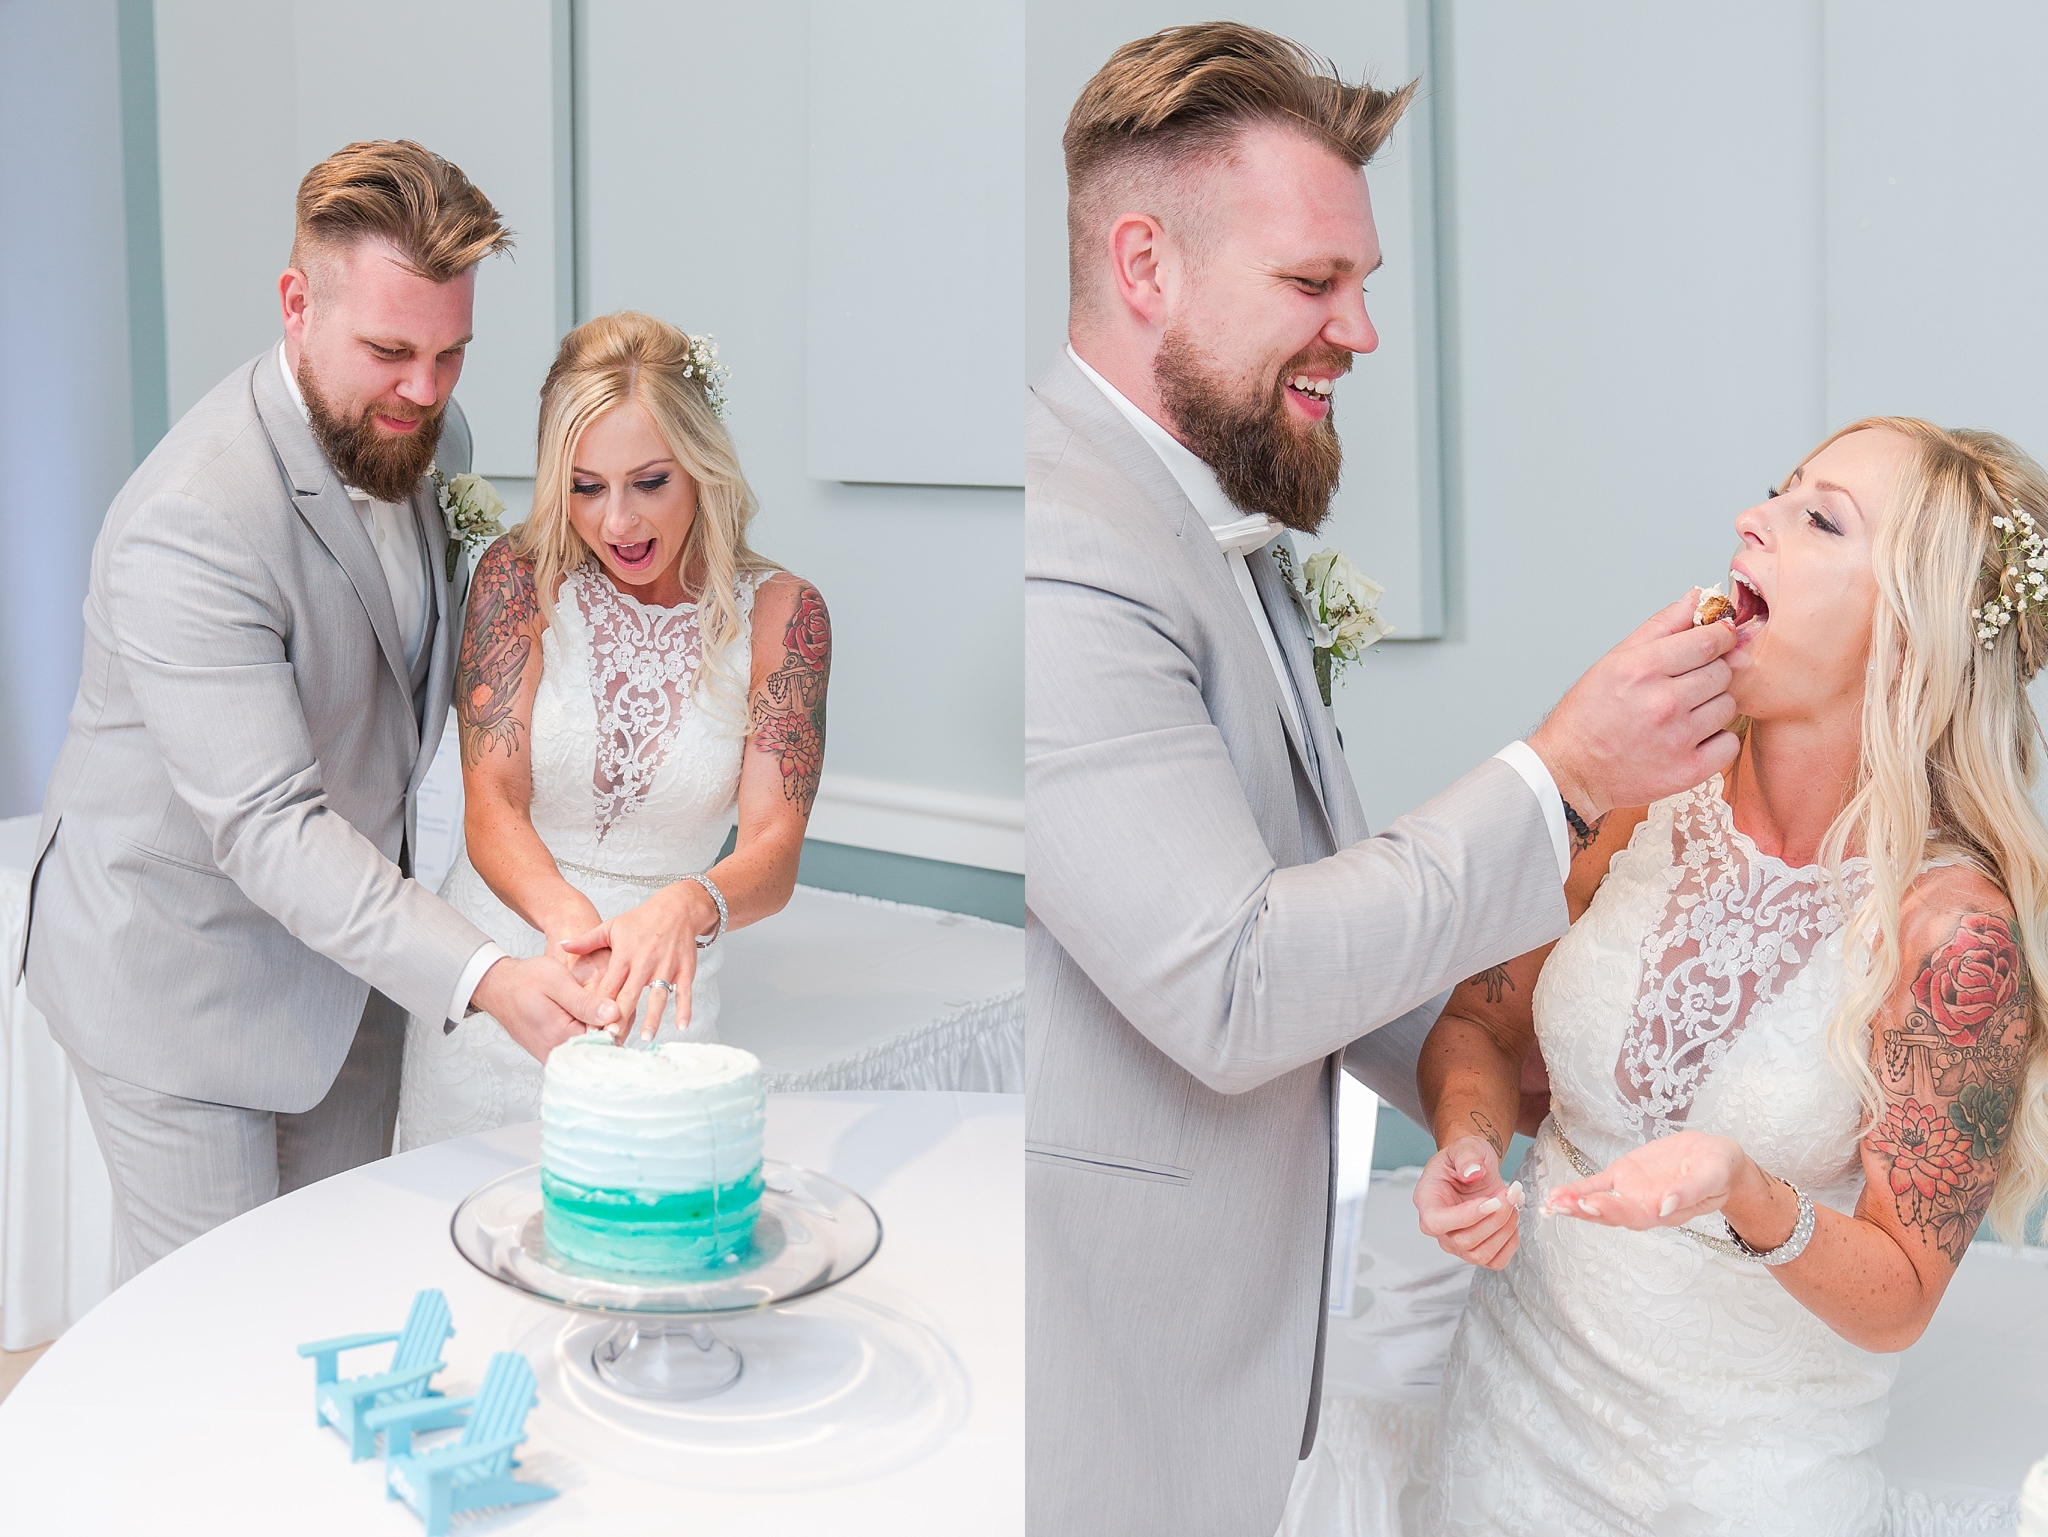 romantic-artful-candid-wedding-photos-in-detroit-lansing-ann-arbor-northern-michigan-and-chicago-by-courtney-carolyn-photography_0060.jpg